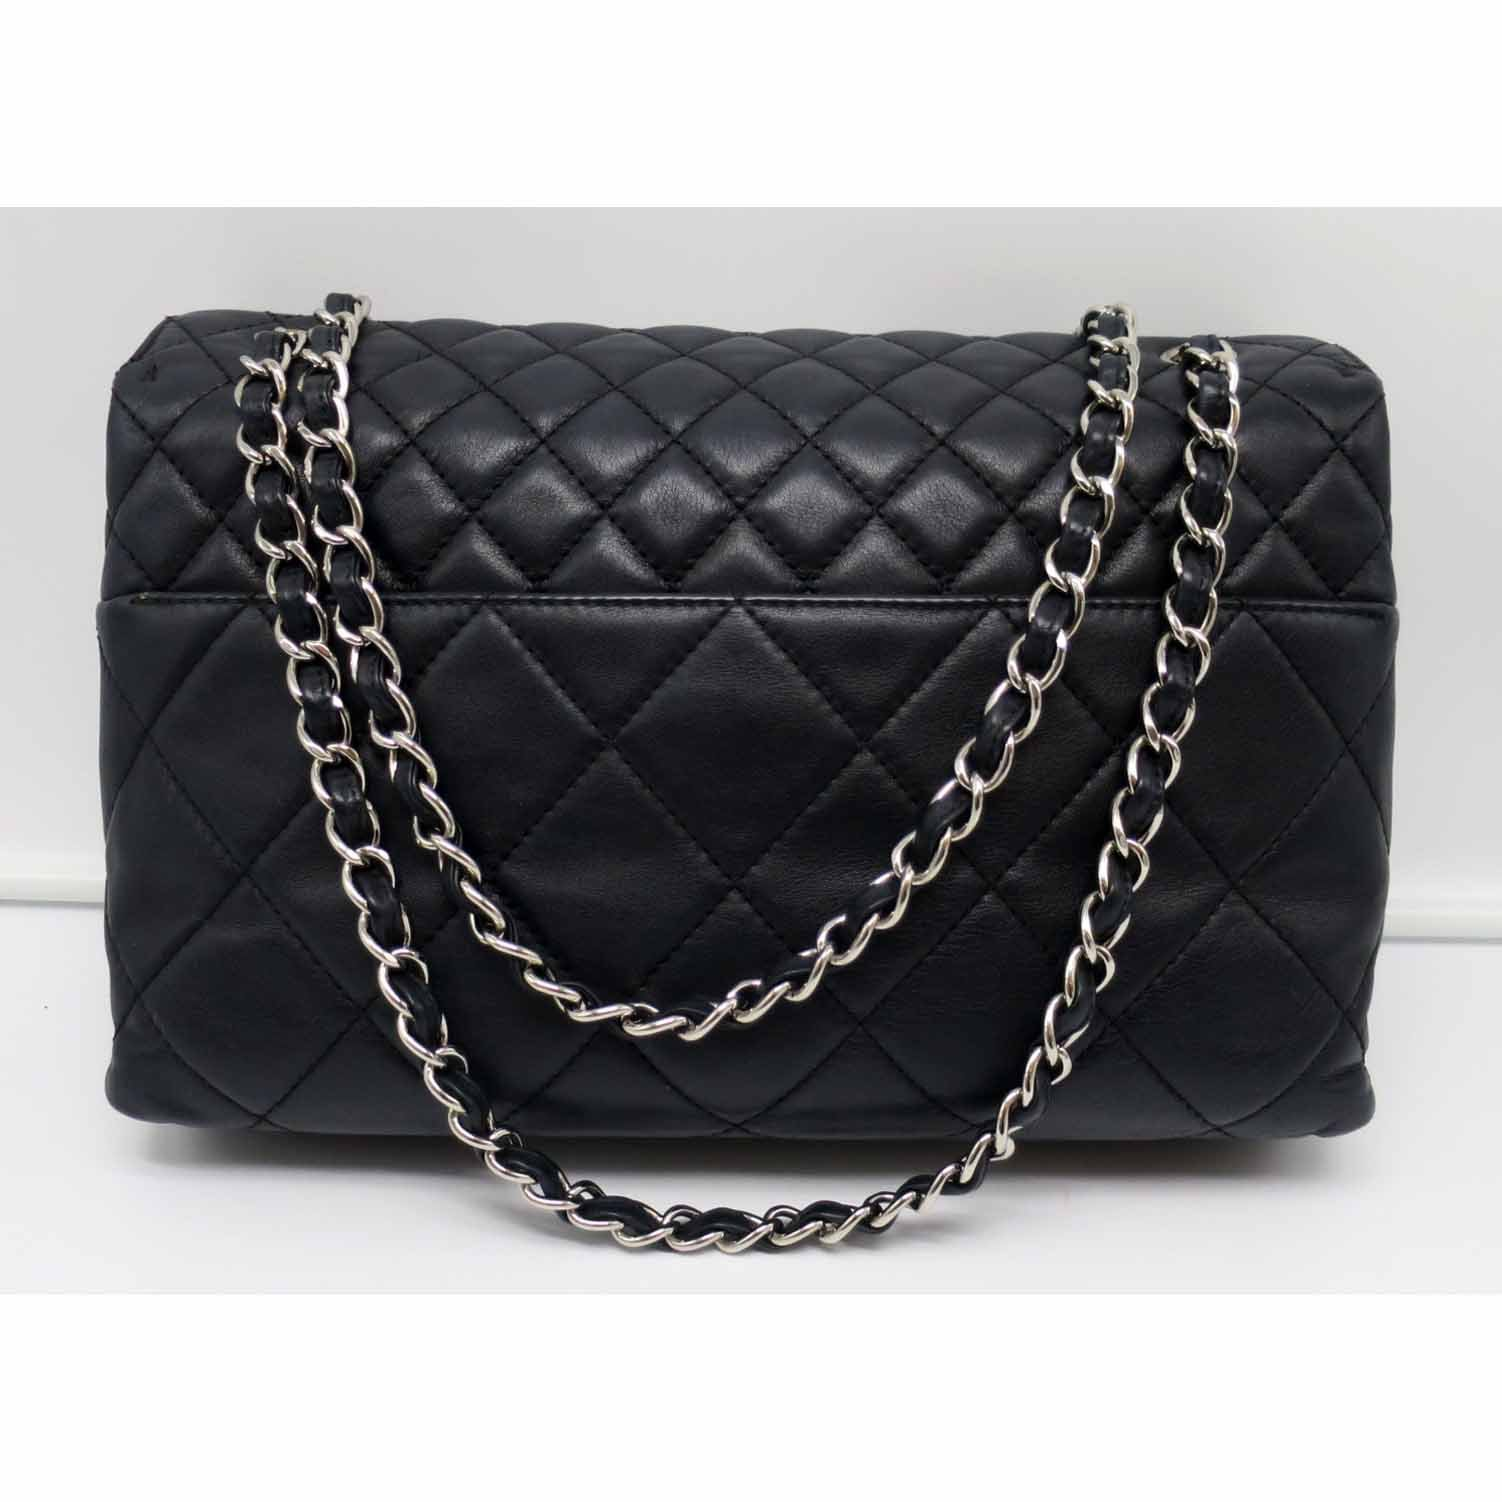 Details about Authentic Chanel Quilted Calfskin Leather Classic In Business  Flap Bag 73e0060568